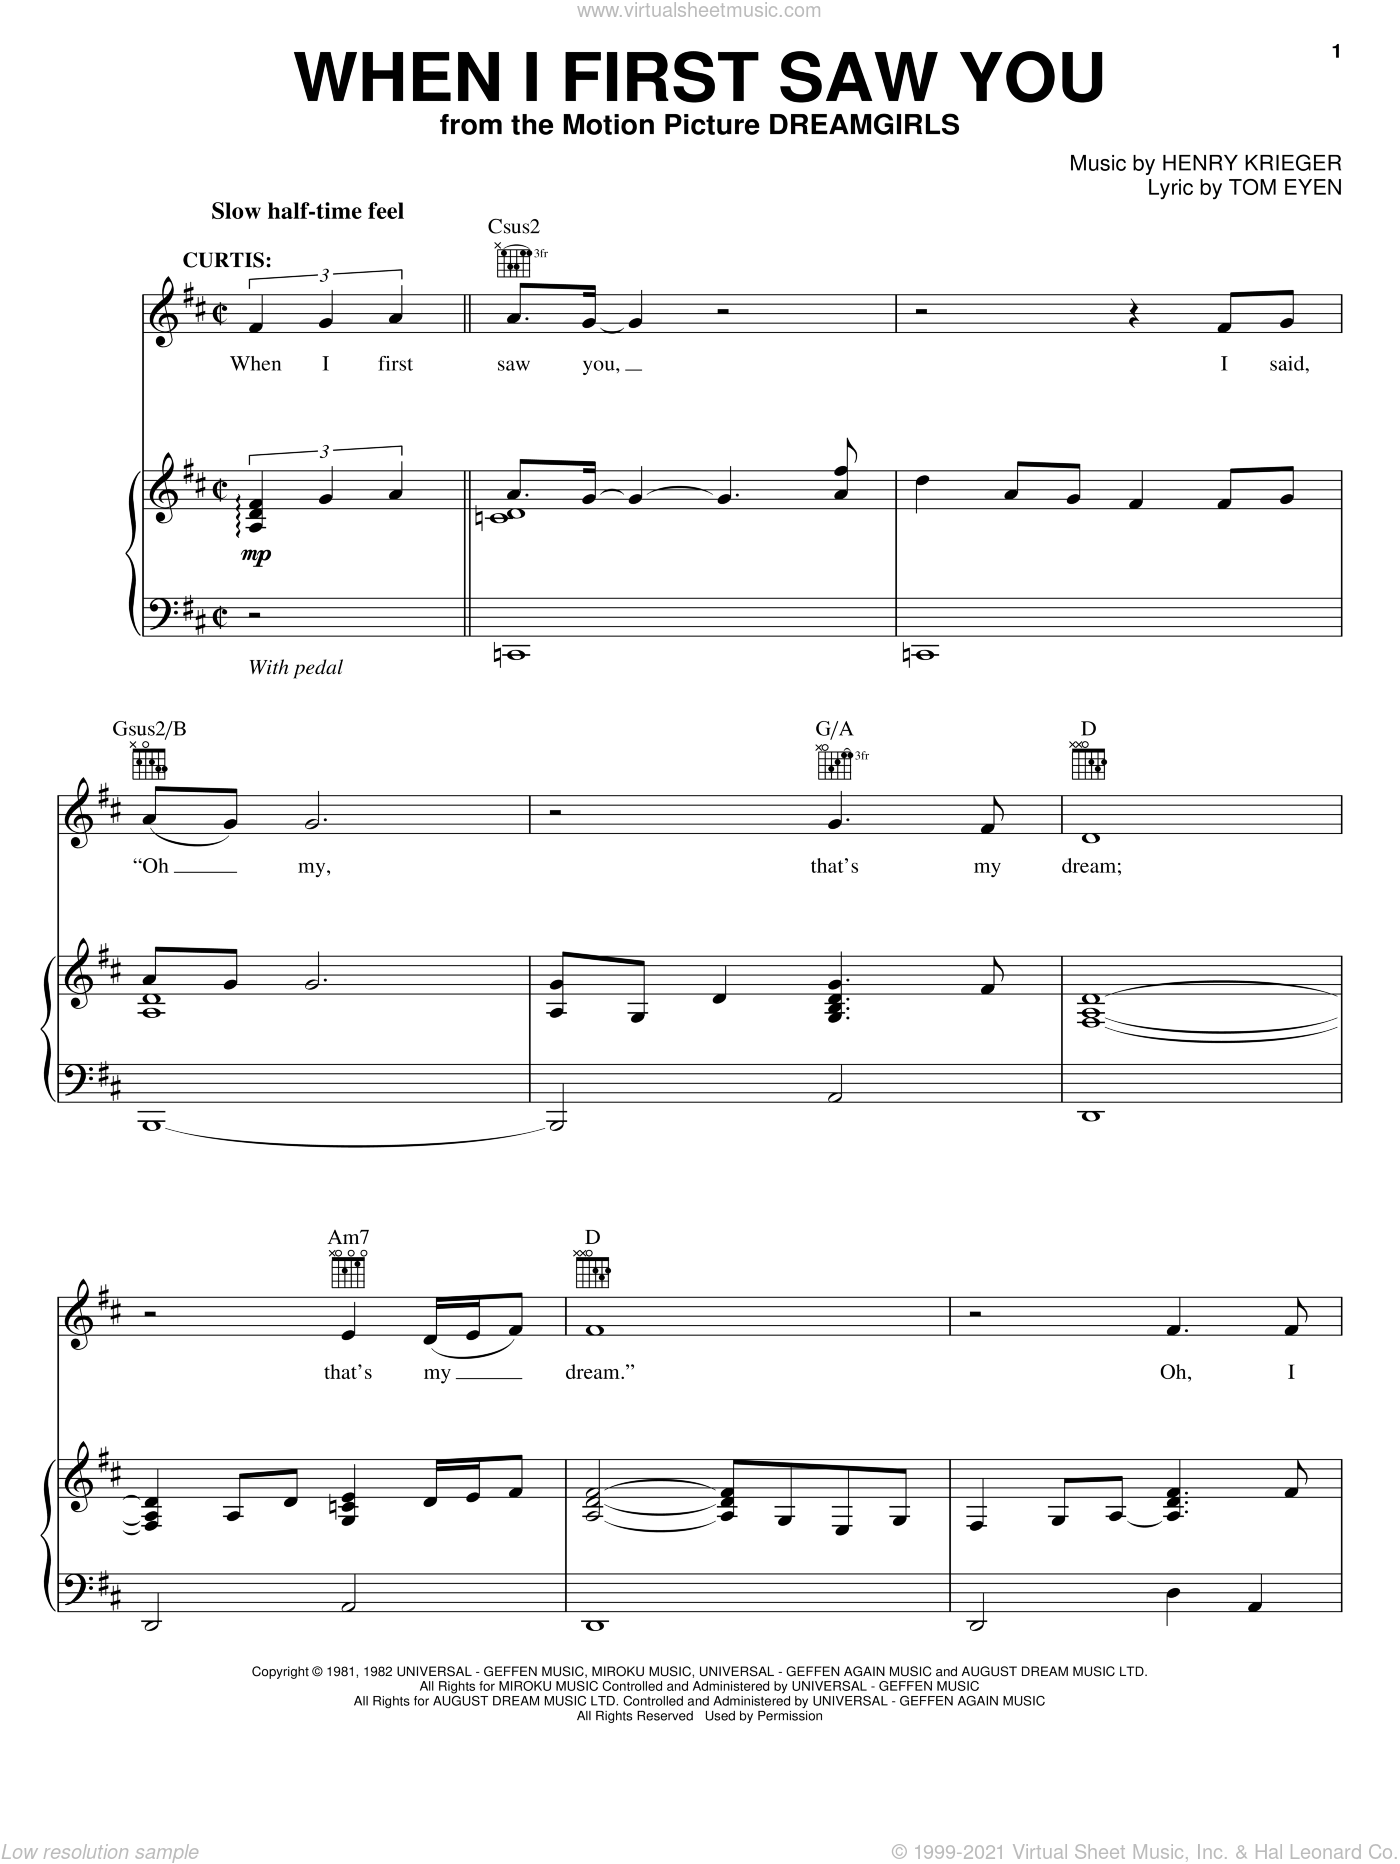 When I First Saw You sheet music for voice, piano or guitar by Jamie Foxx, Dreamgirls (Movie), Henry Krieger and Tom Eyen, intermediate. Score Image Preview.